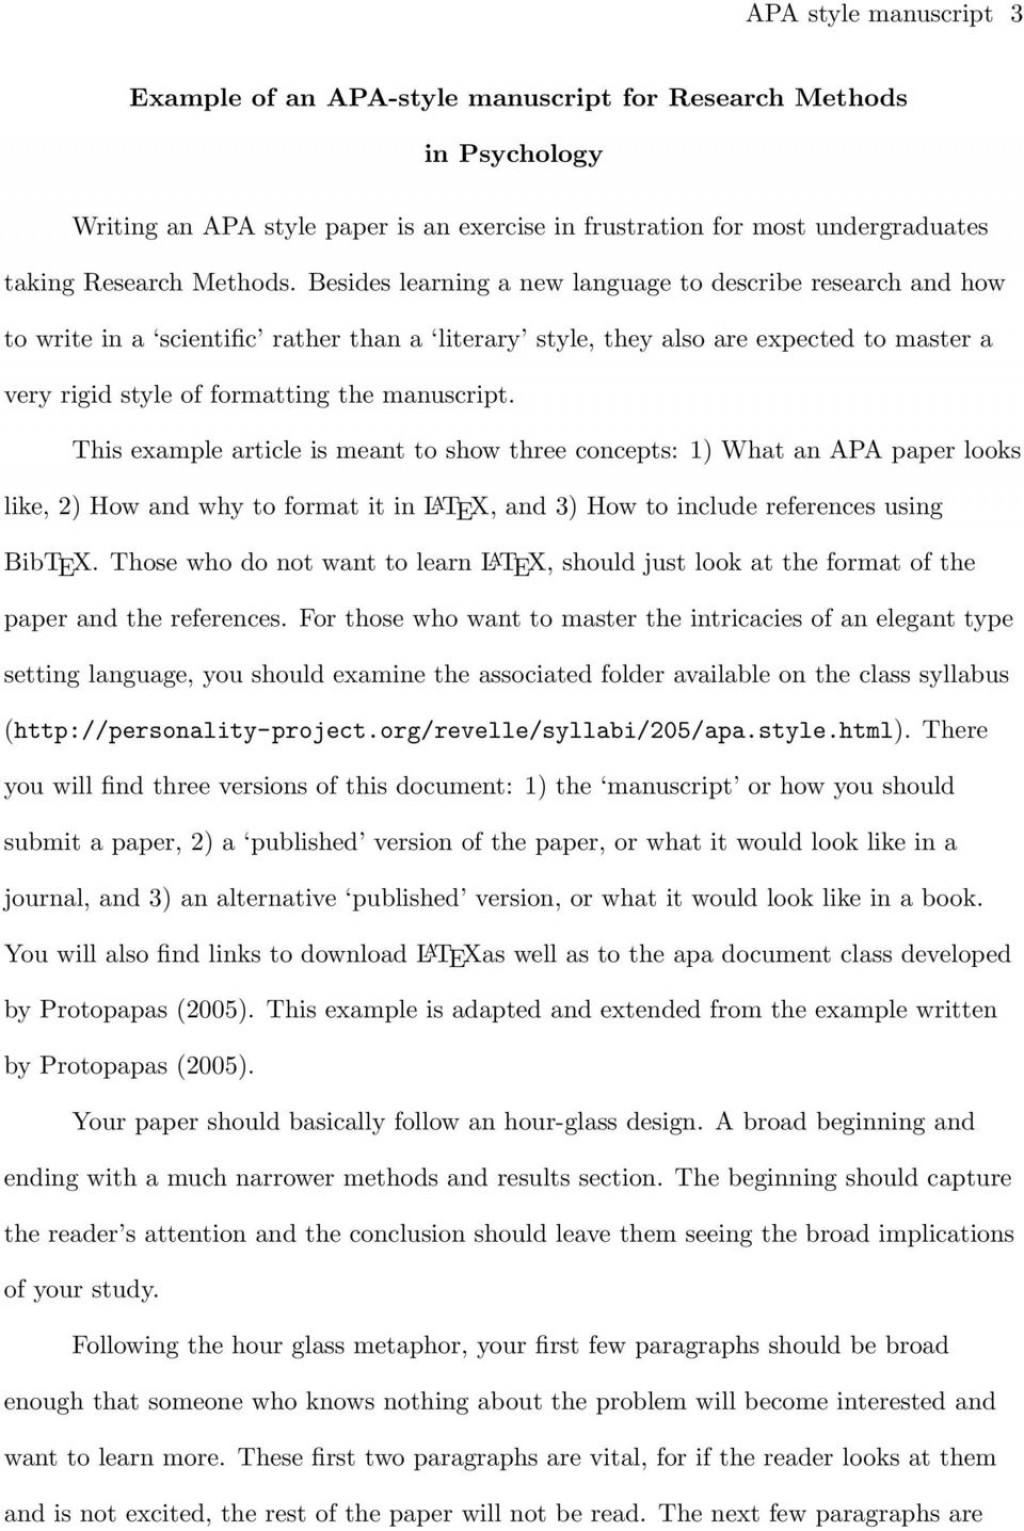 005 Page 3 Apa Style Research Paper Methods Archaicawful Section Large